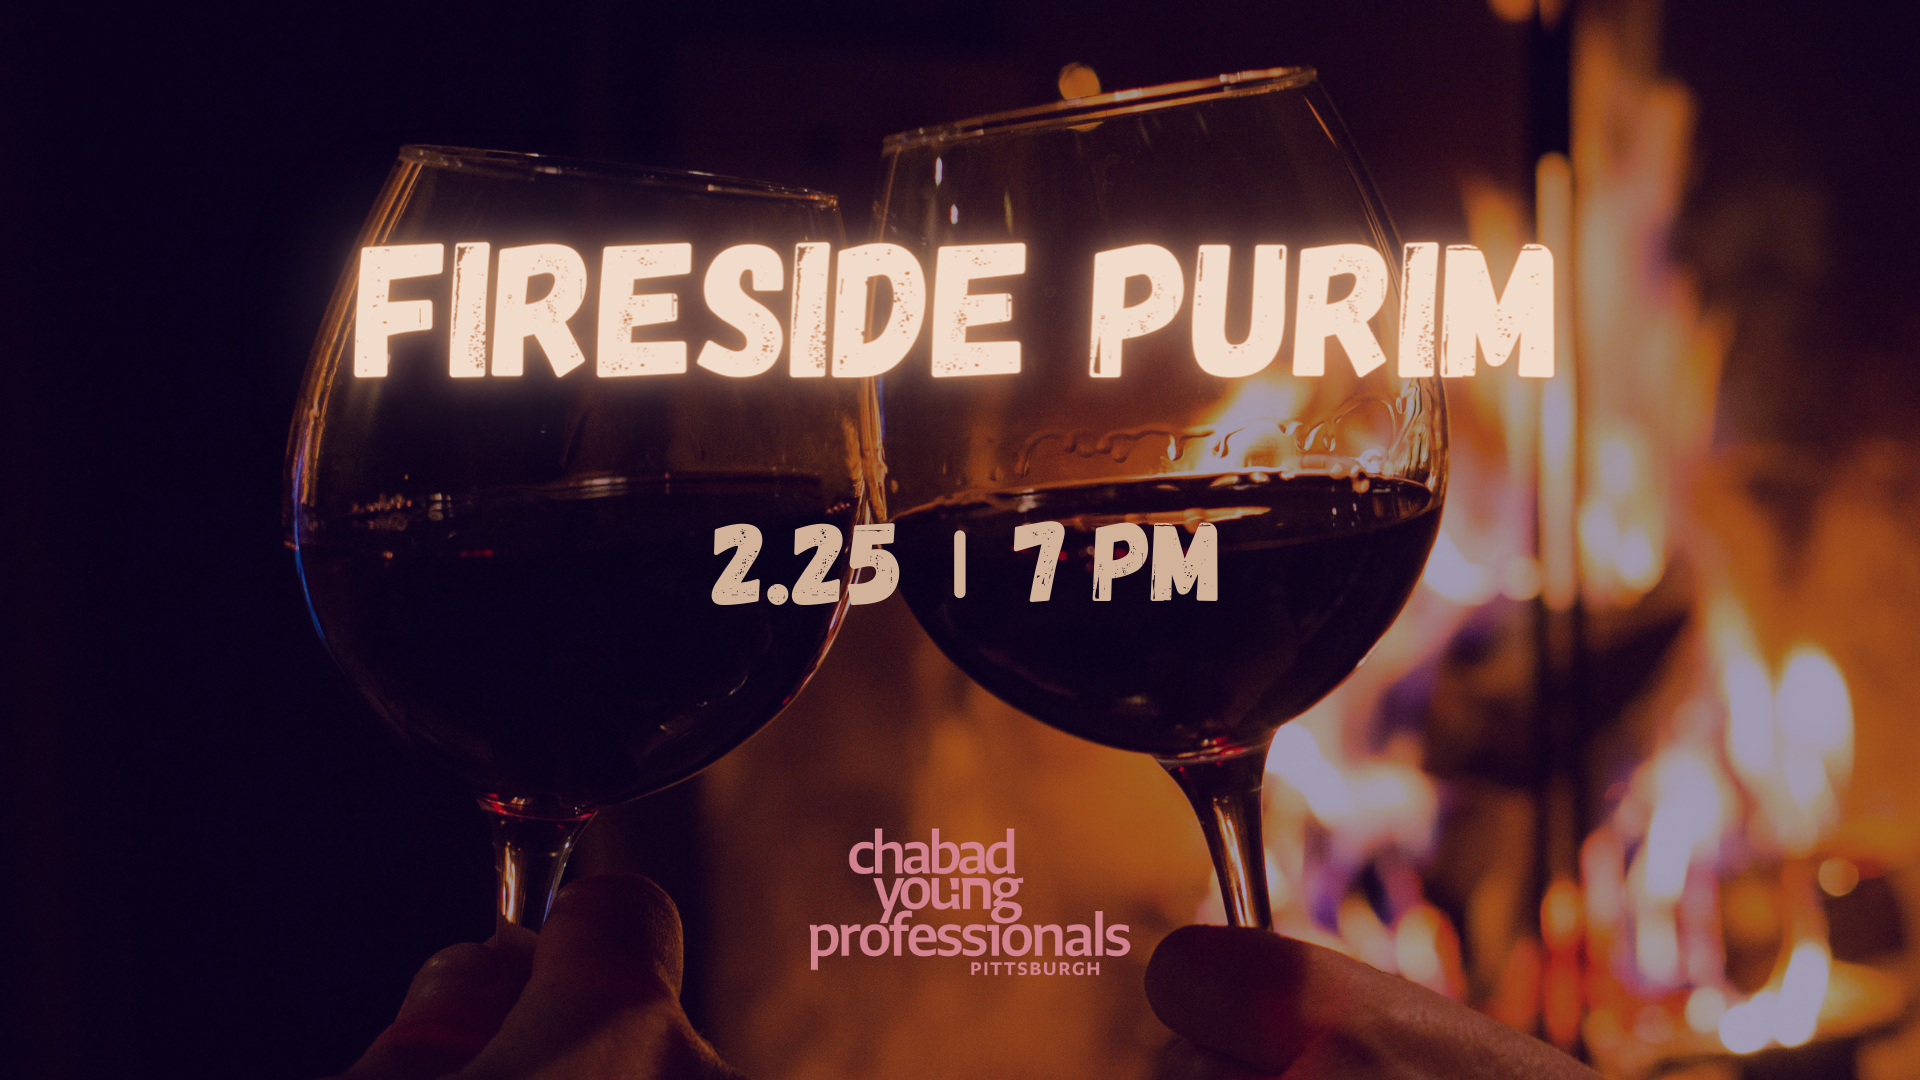 FIRESIDE%20PURIM%20Event%20%20_1_.png